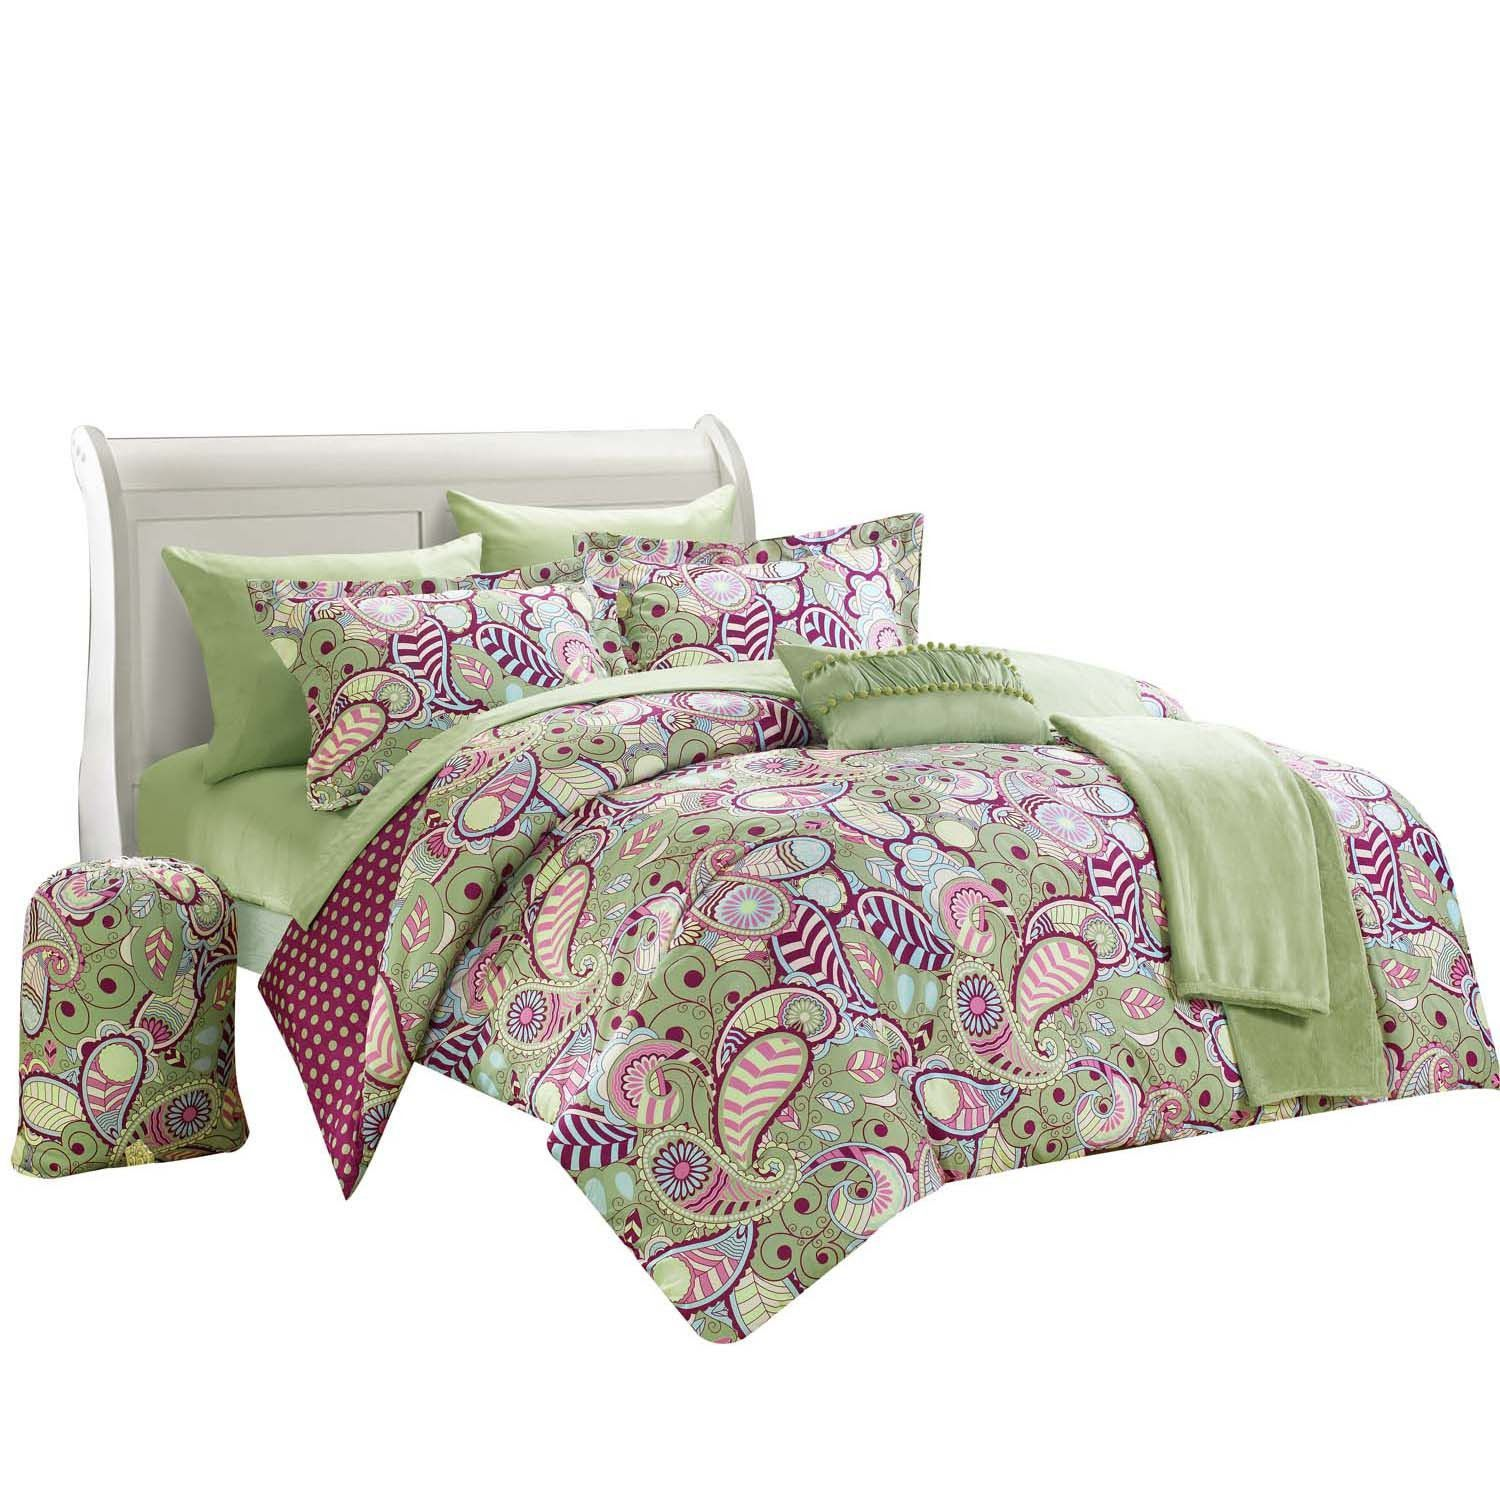 Princess Paisley Polka Dot forter Set Bed In A Bag Full Twin XL